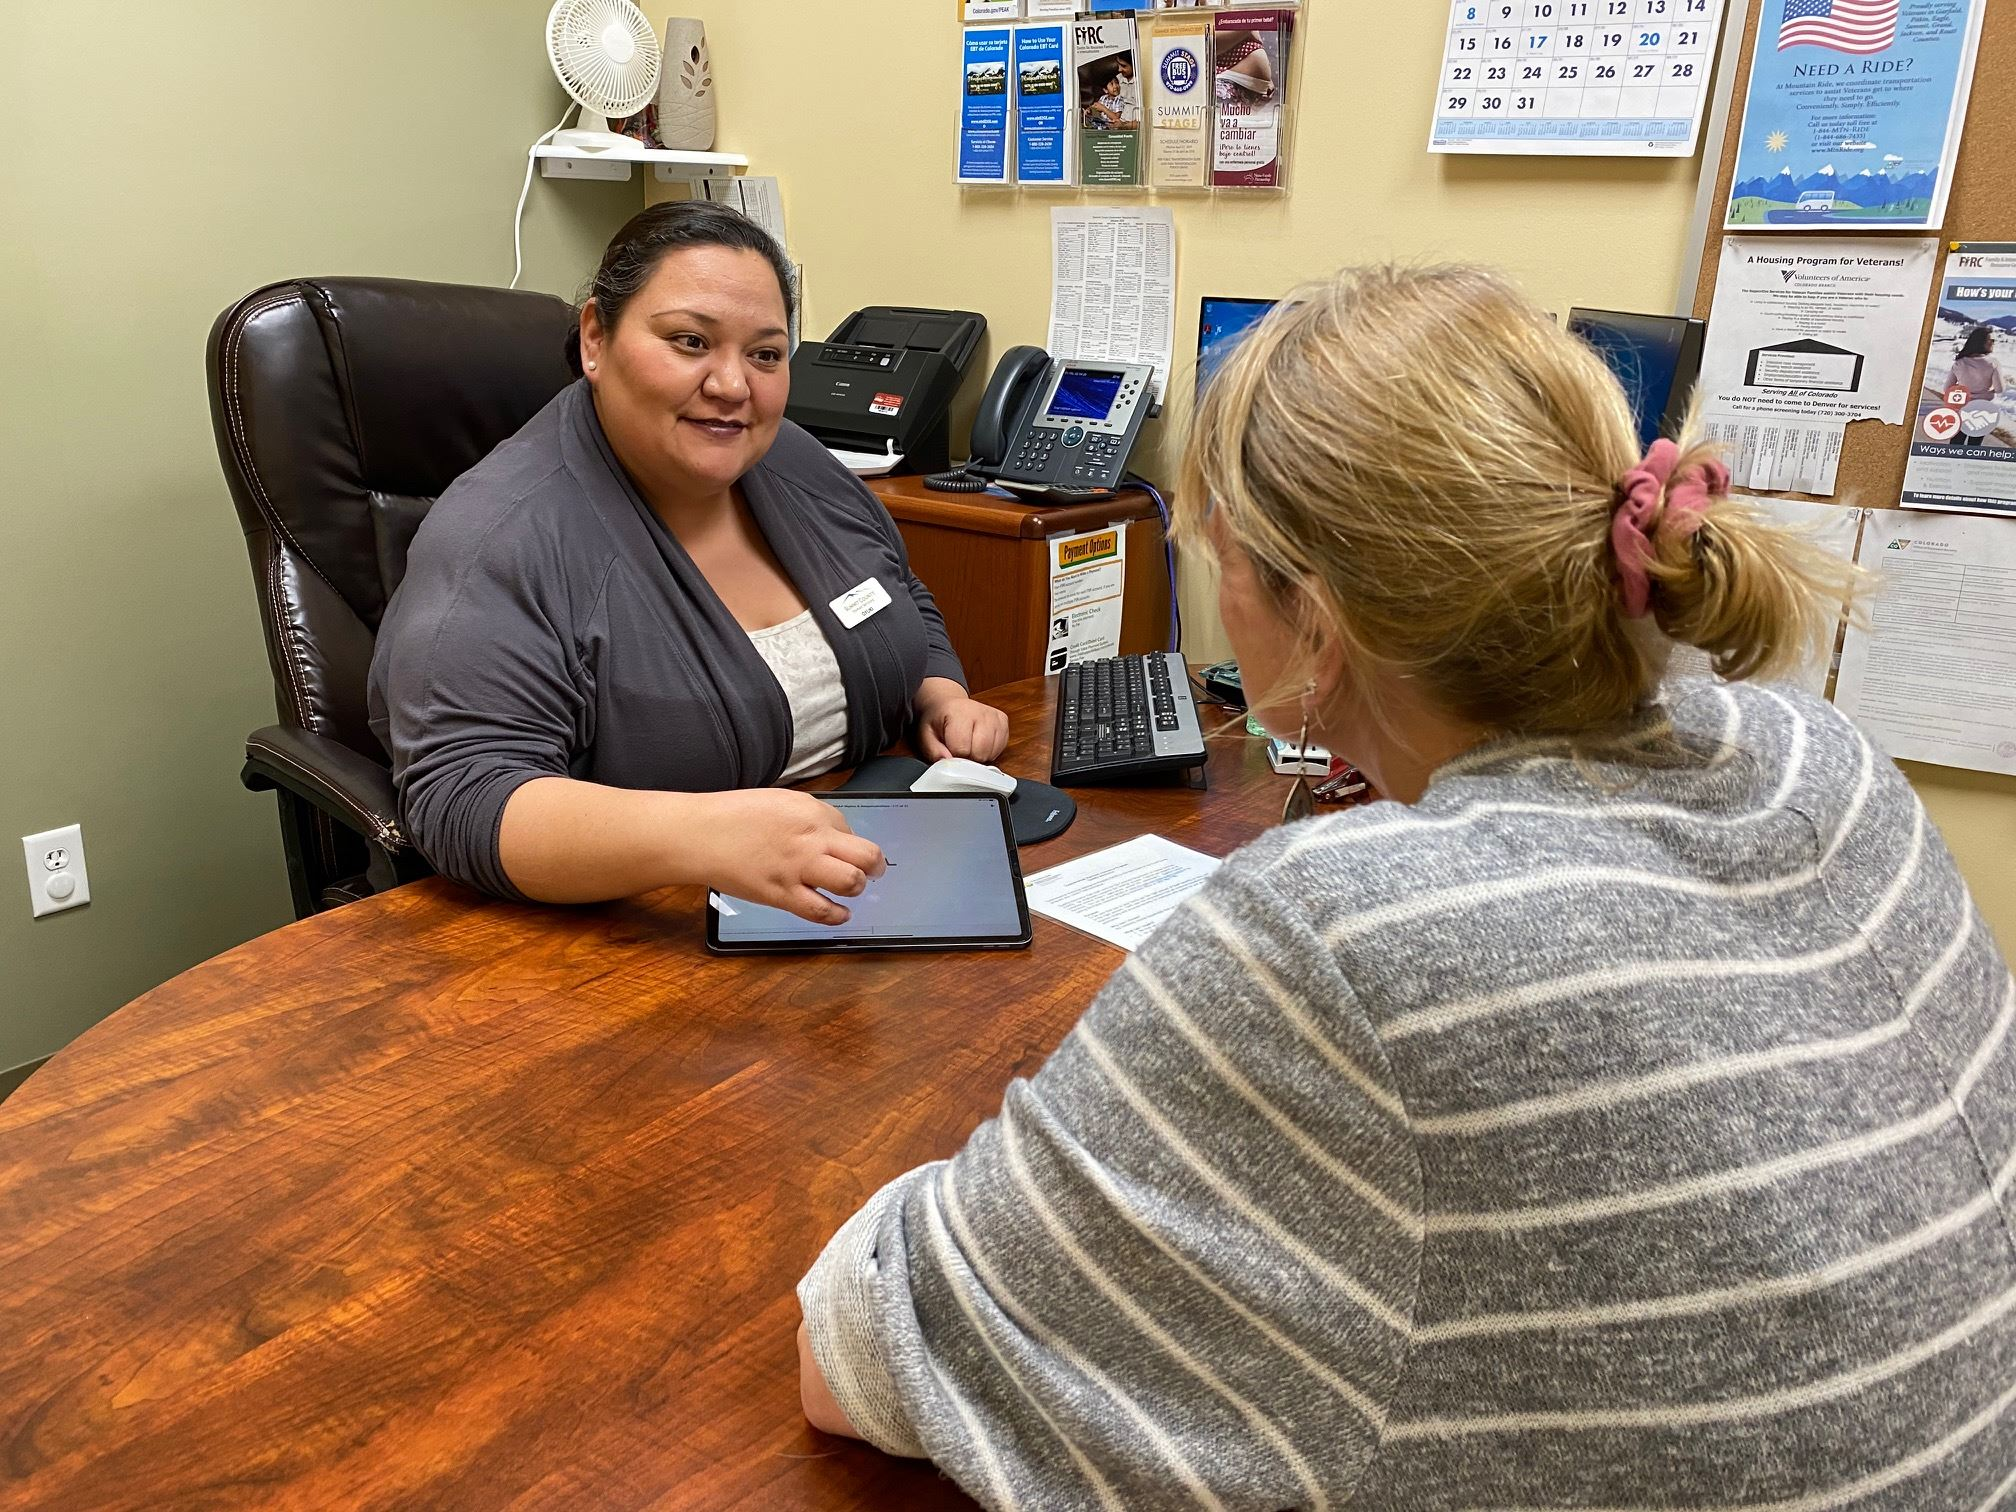 A human services worker talks with a woman in an office.